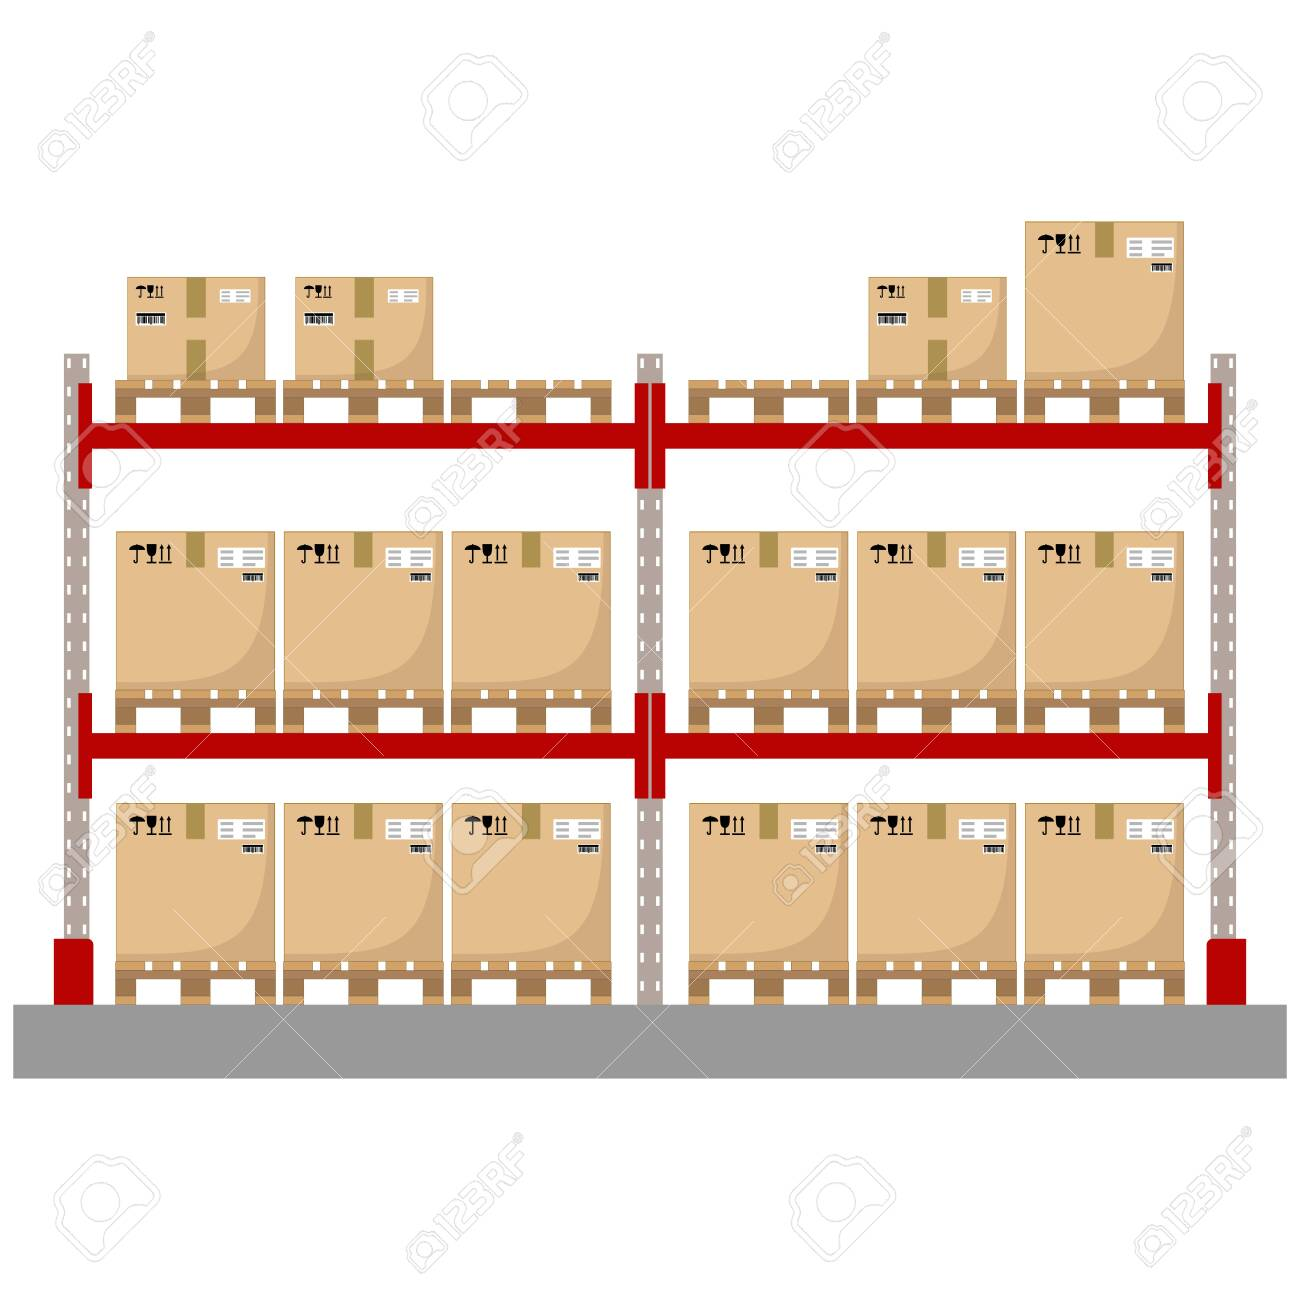 Metal racks for a warehouse with boxes on pallets. Flat design, front view. Vector illustration. - 142107841